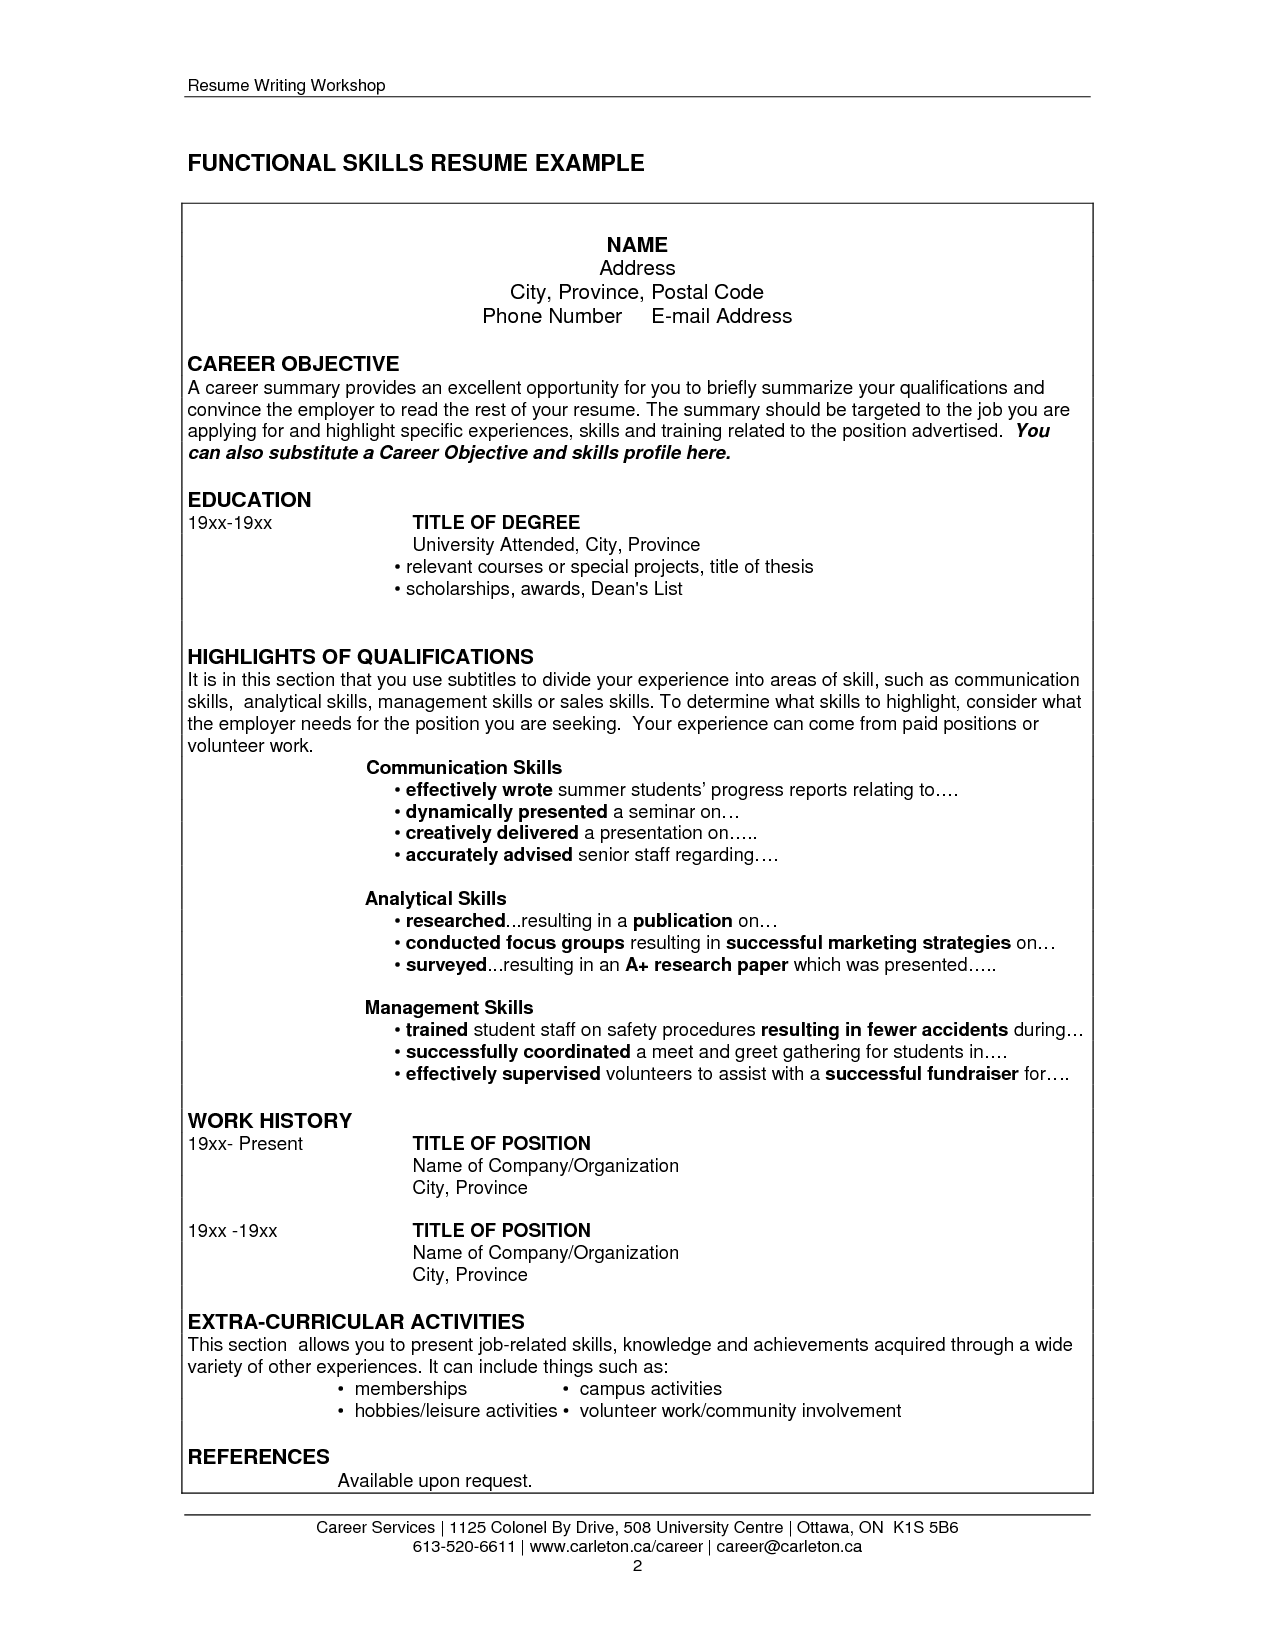 Developer Resume Examples Image Result For Skills Resume Format  Business  Pinterest